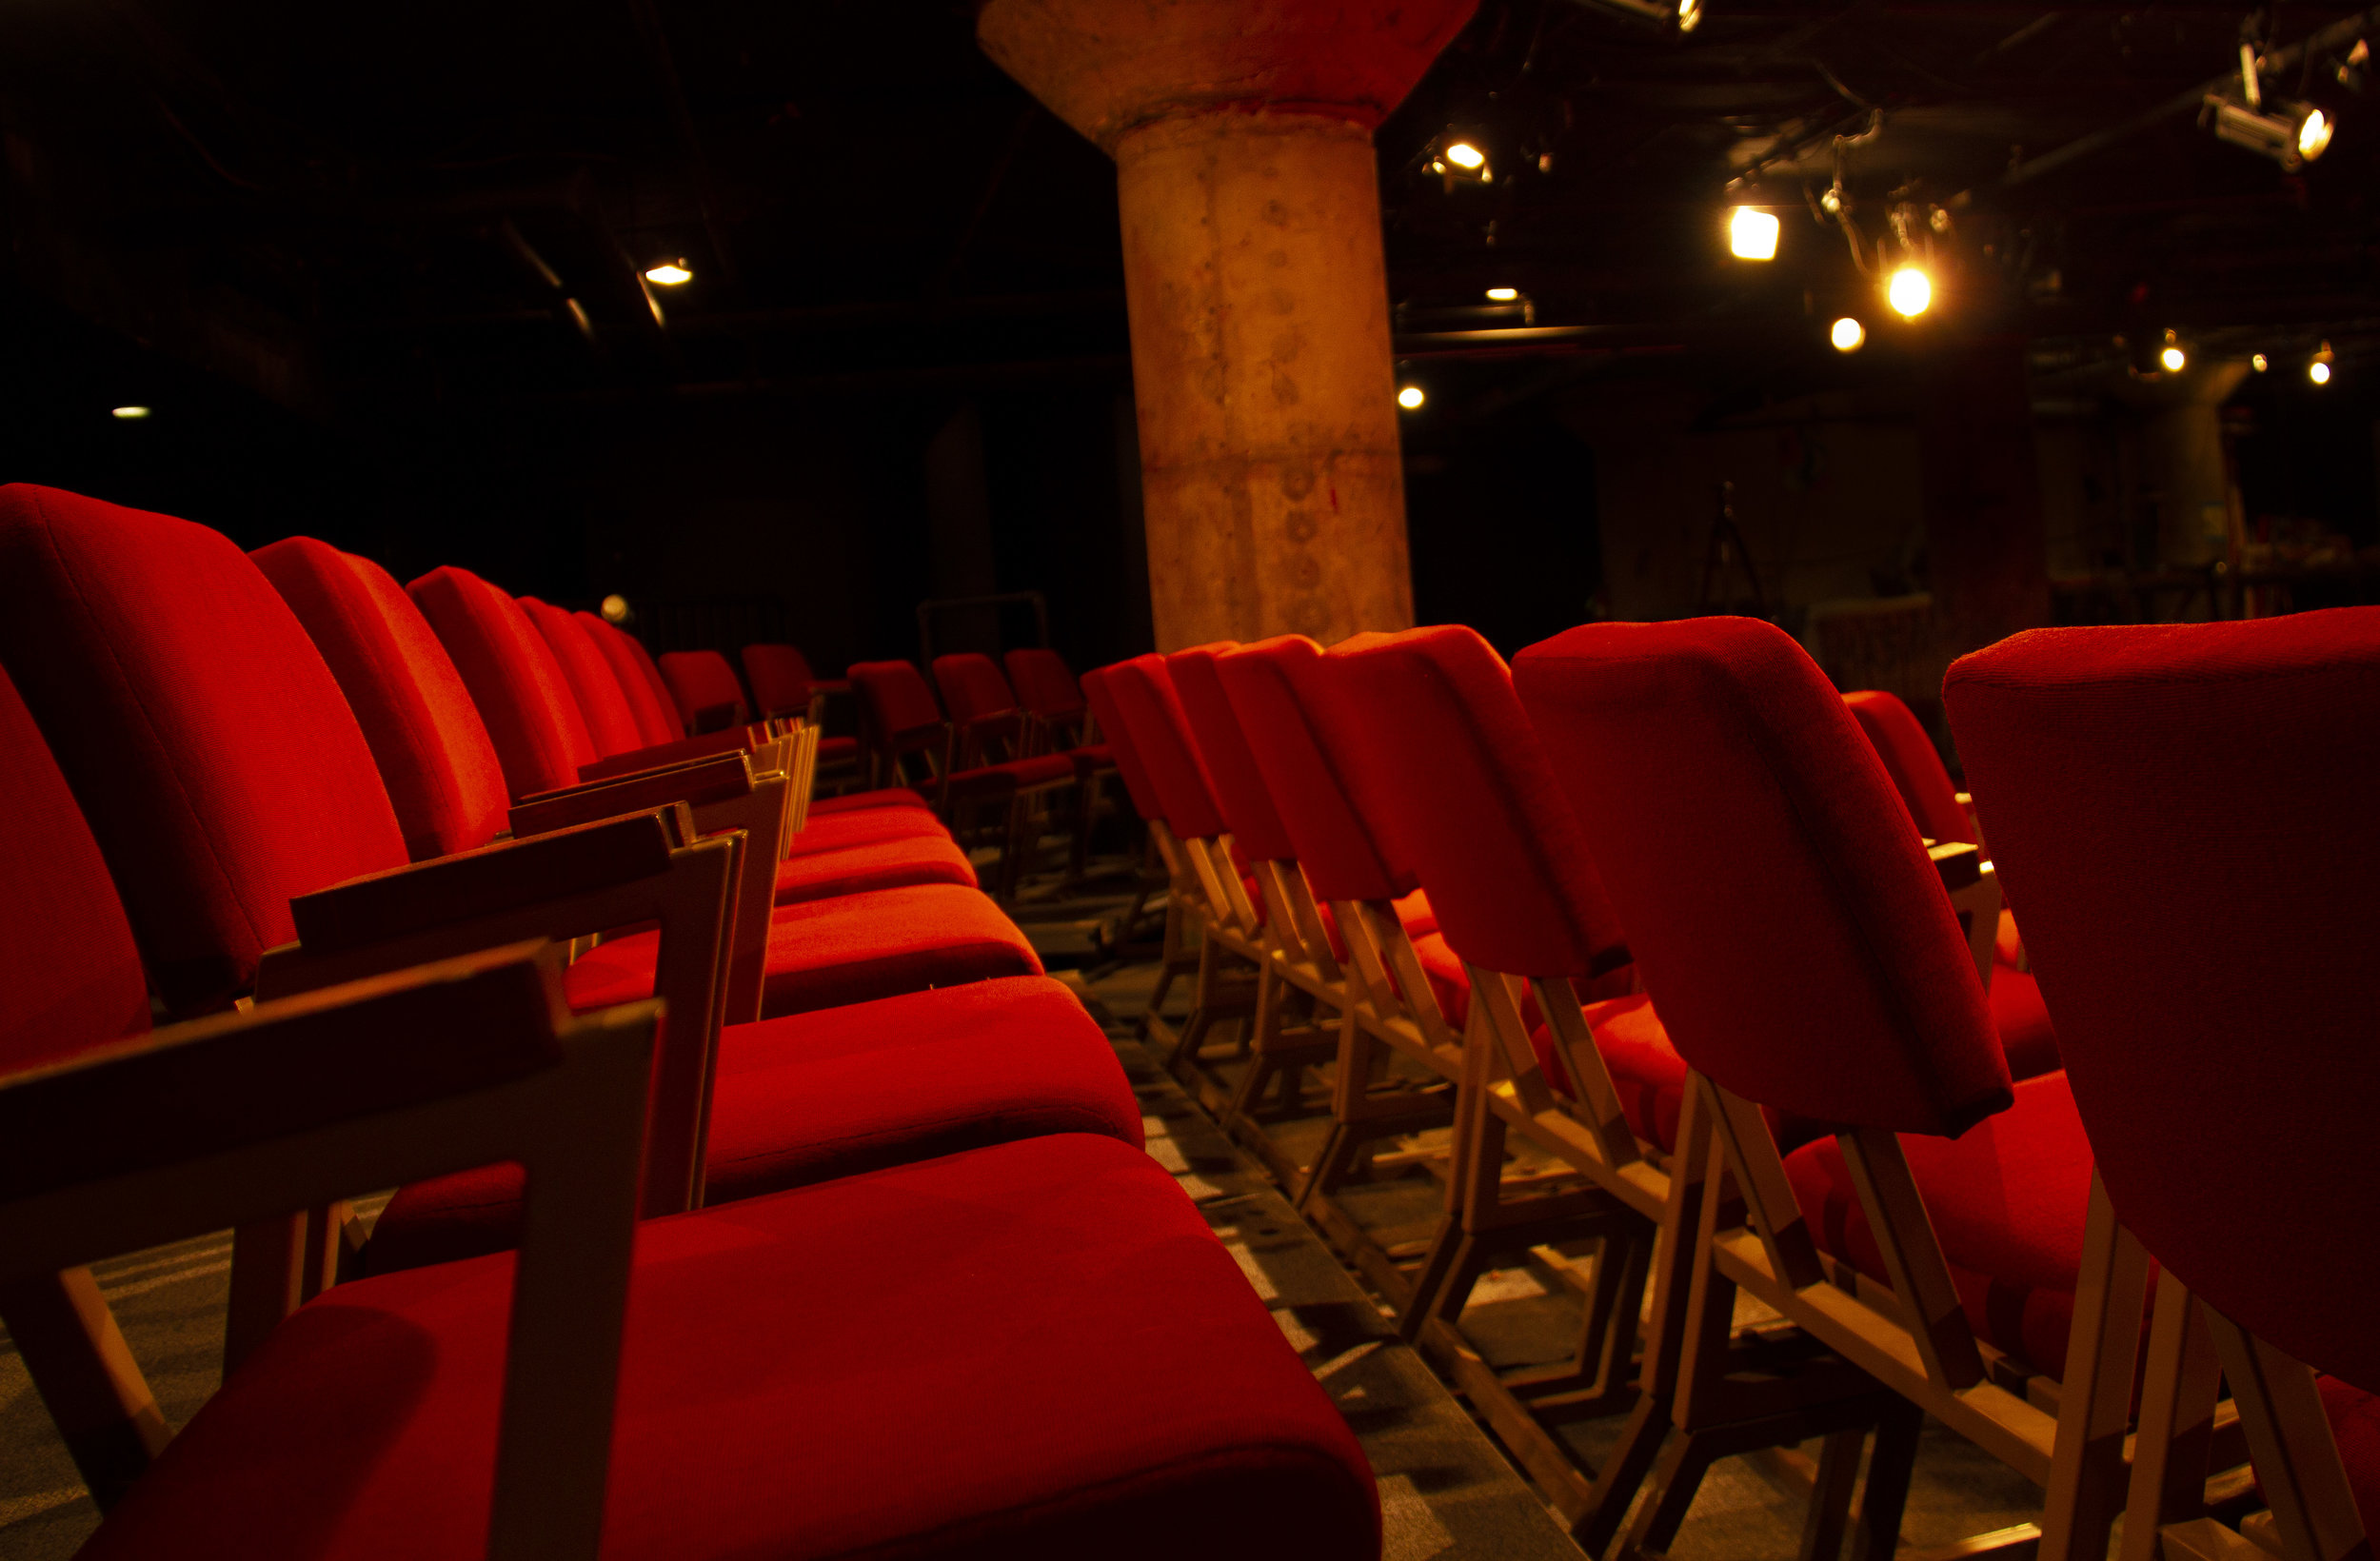 The Frank LLoyd WrighT Seating at Undermain Theatre -